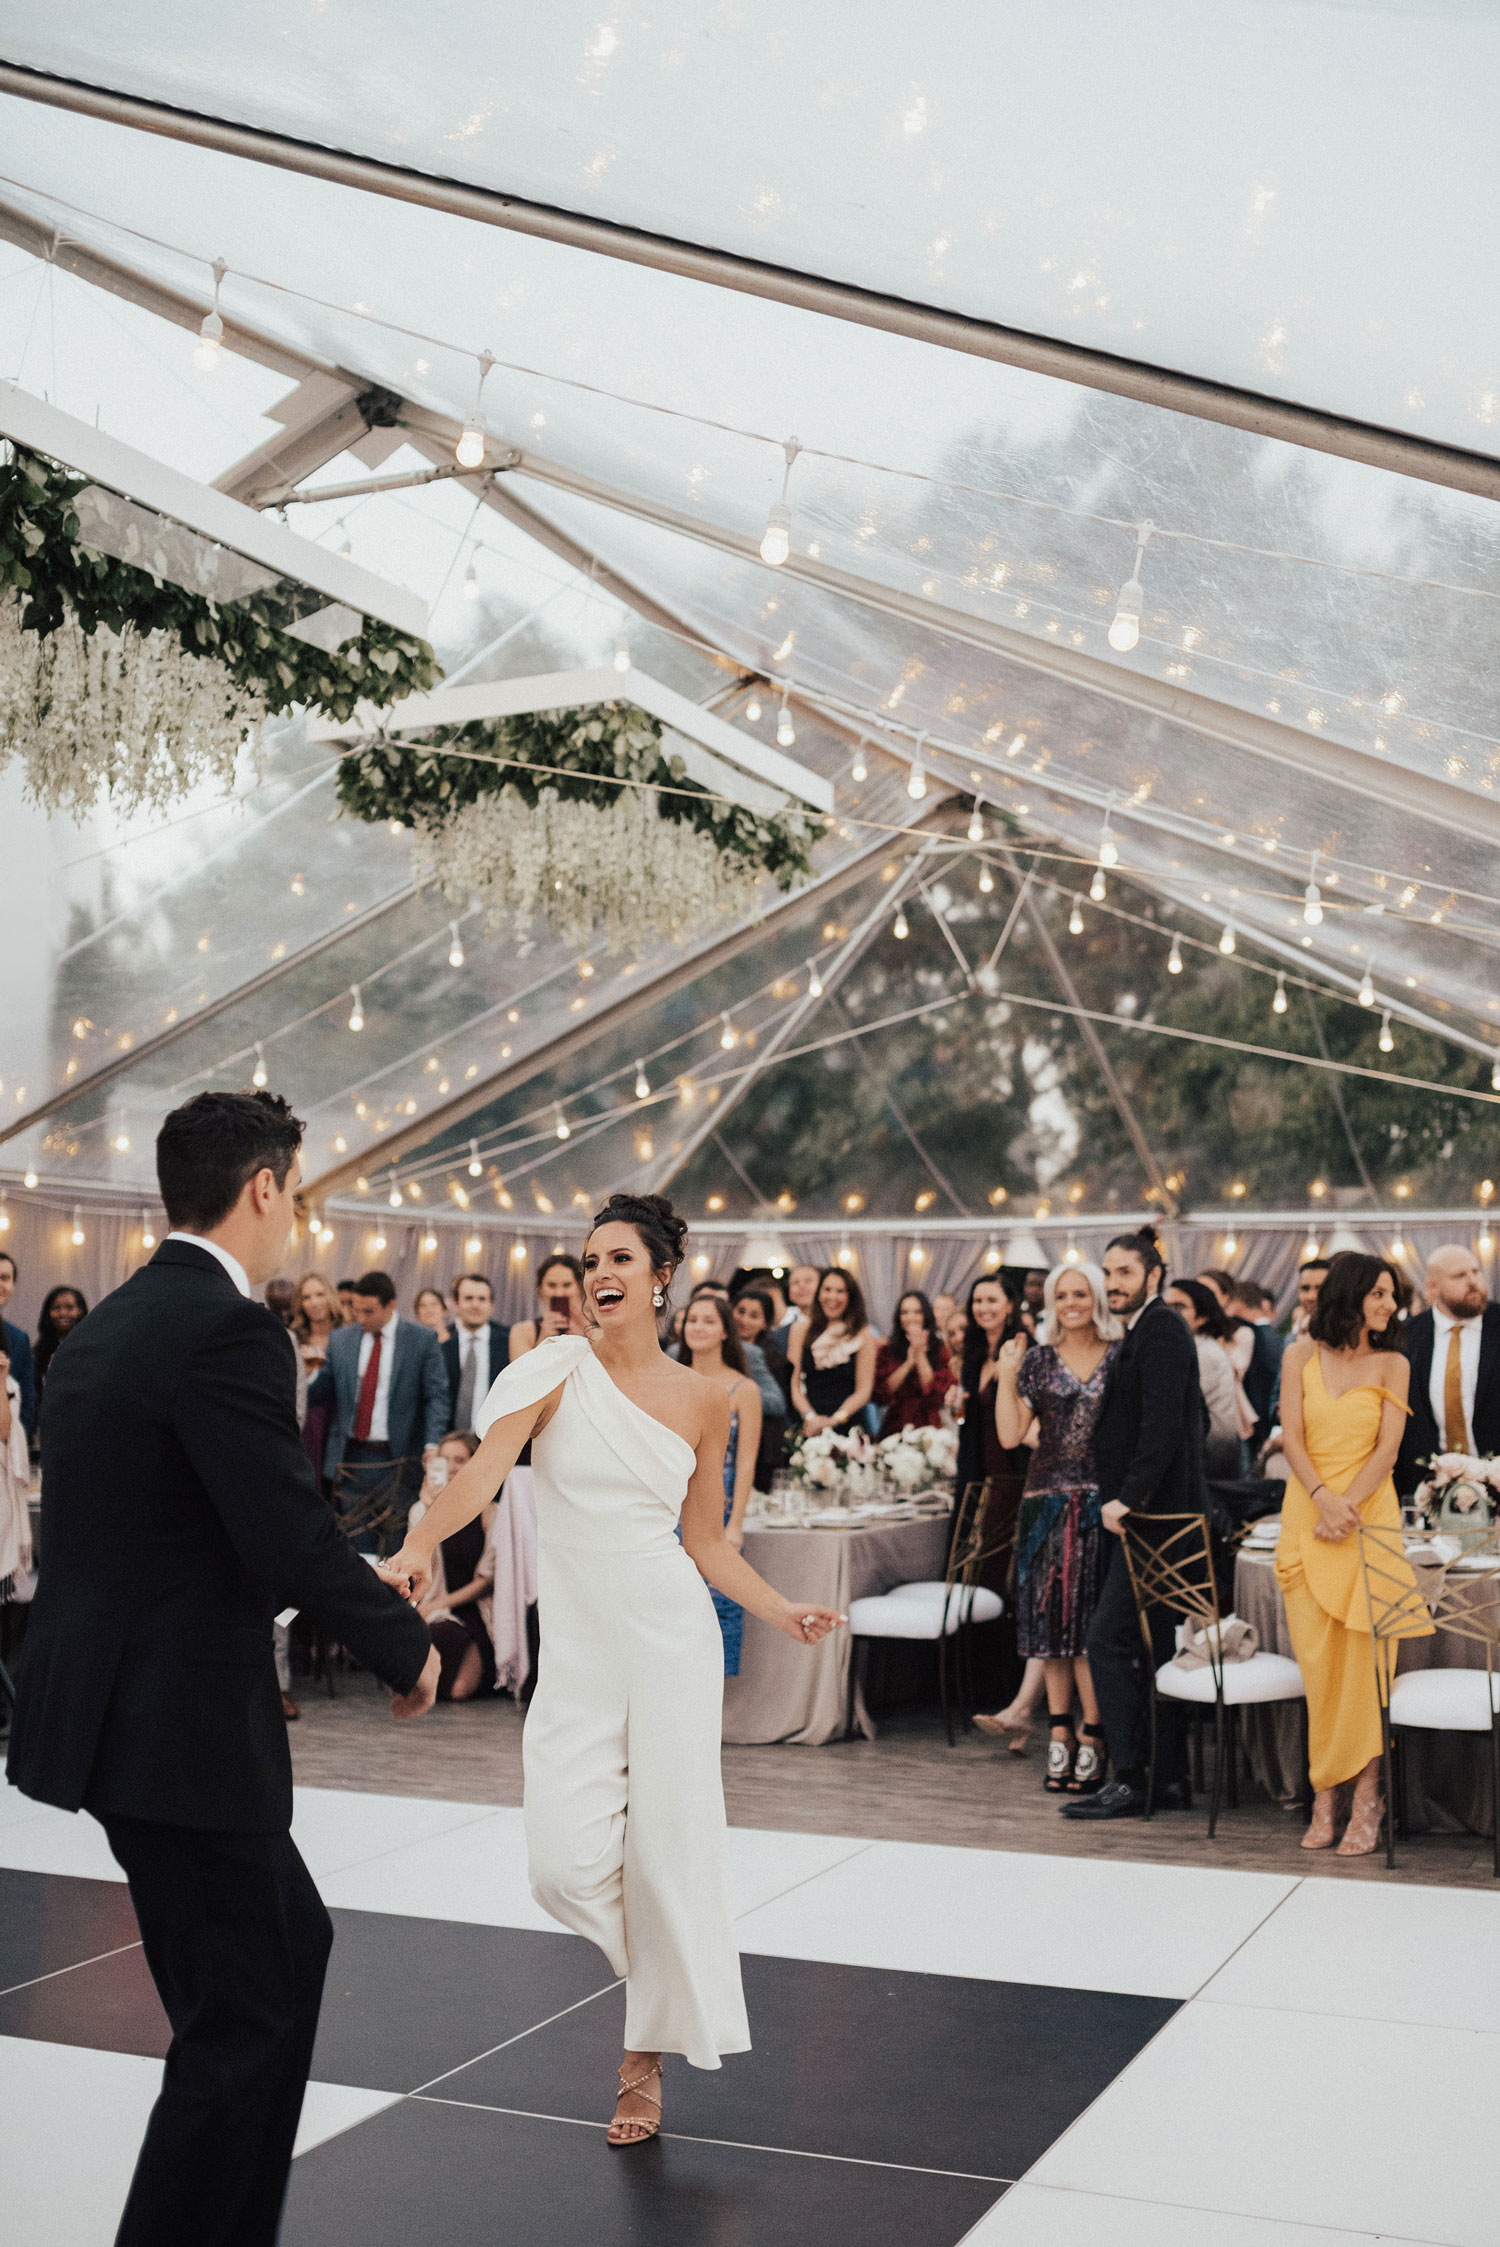 bride in cool white jumpsuit dancing with groom at wedding reception tent wedding first dance